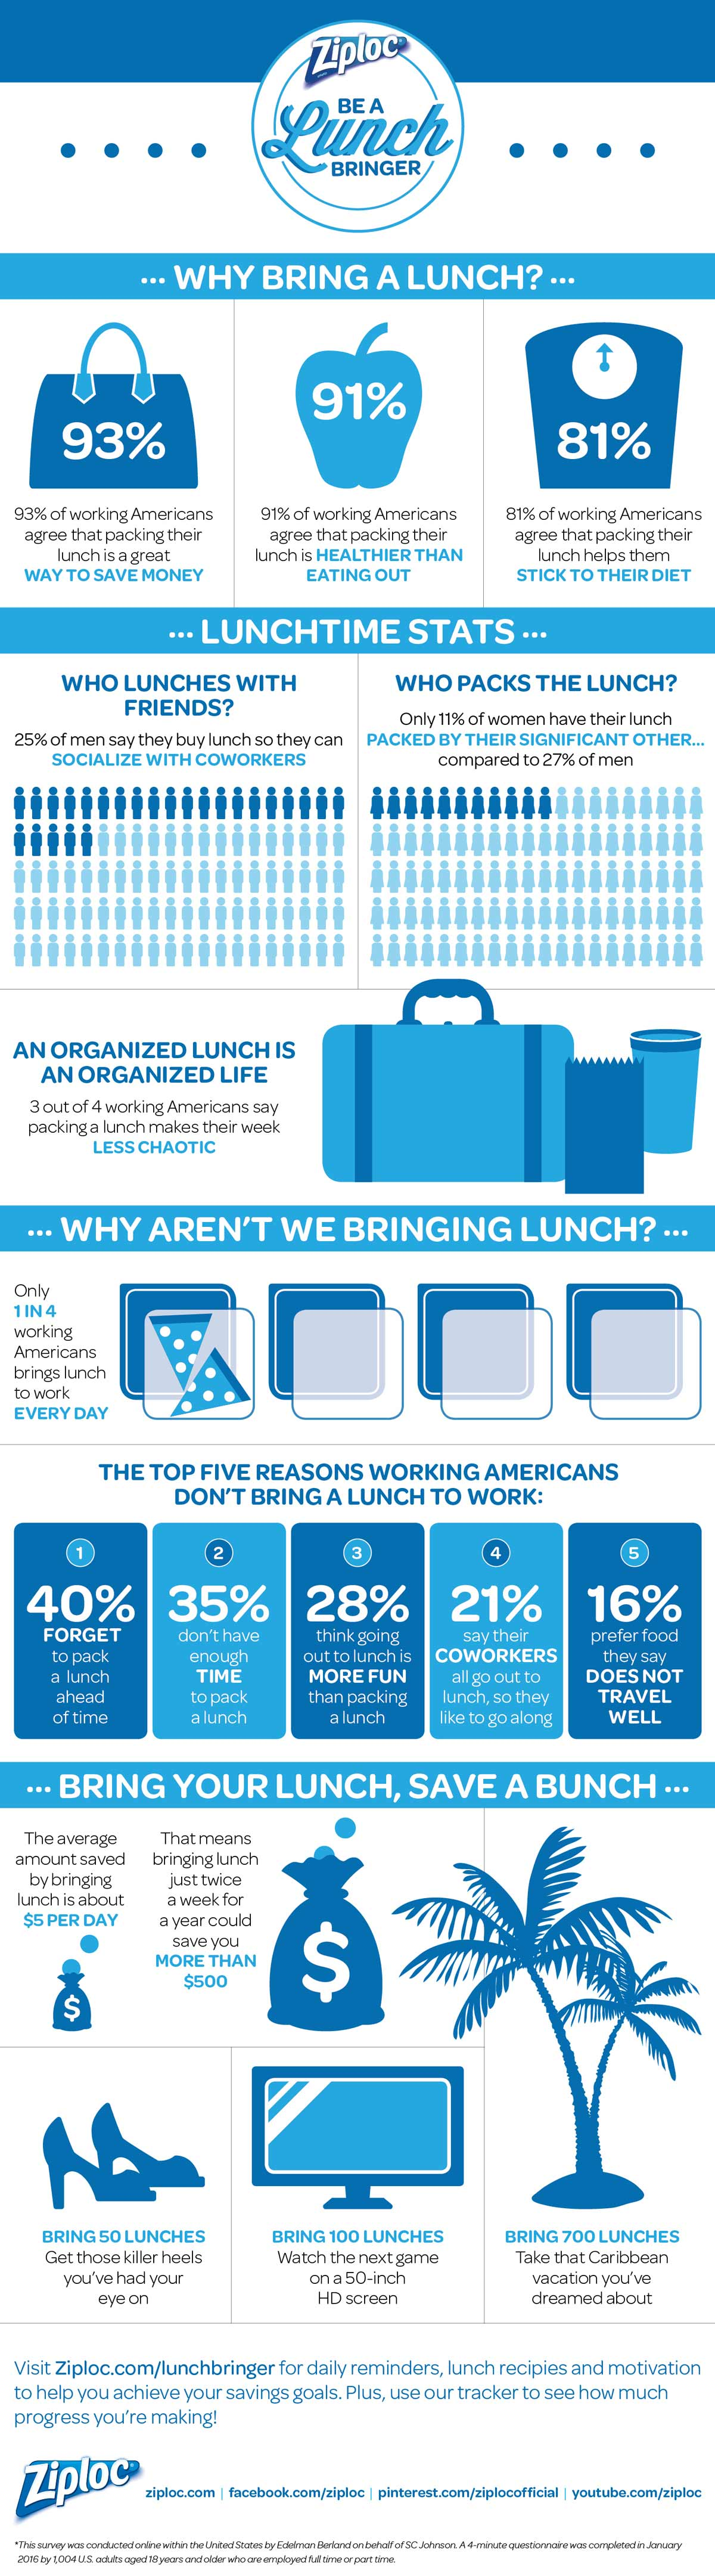 """""""Be a Lunch Bringer"""" infographic from Ziploc brand"""